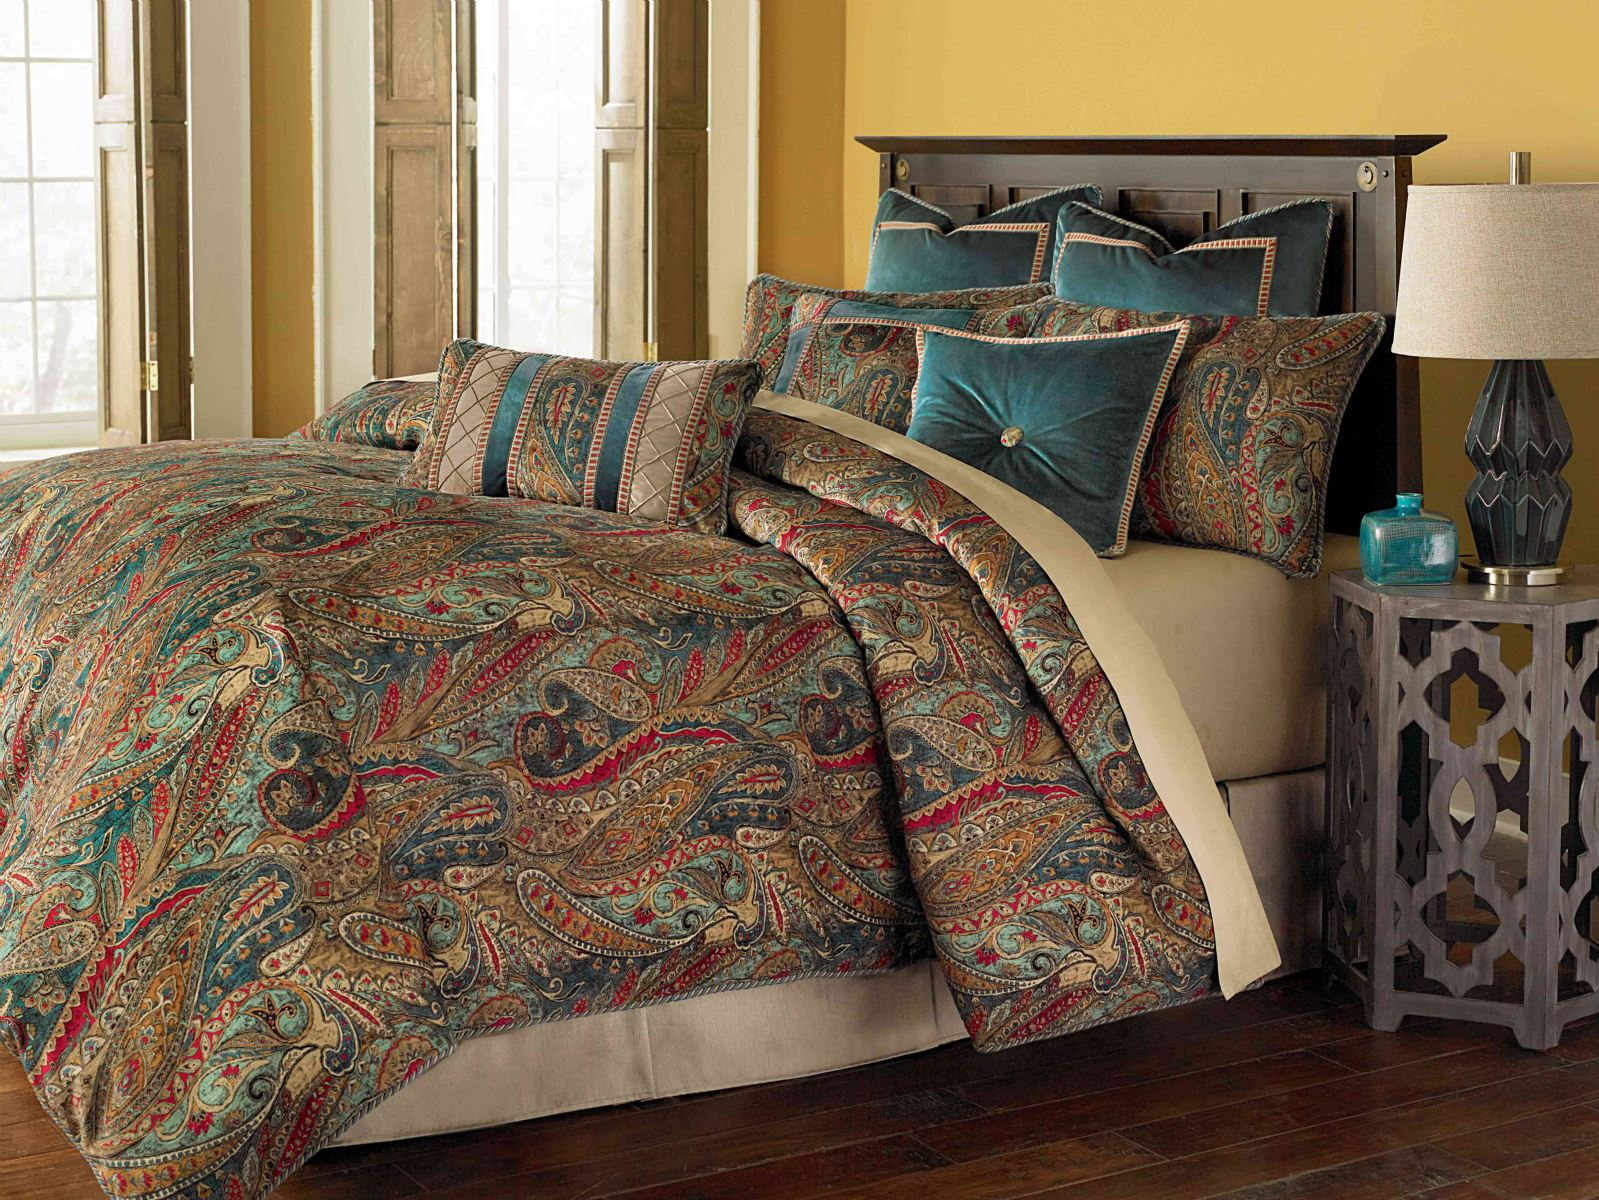 NEW Michael Amini Seville 9pc Queen Mediterranean-Inspired